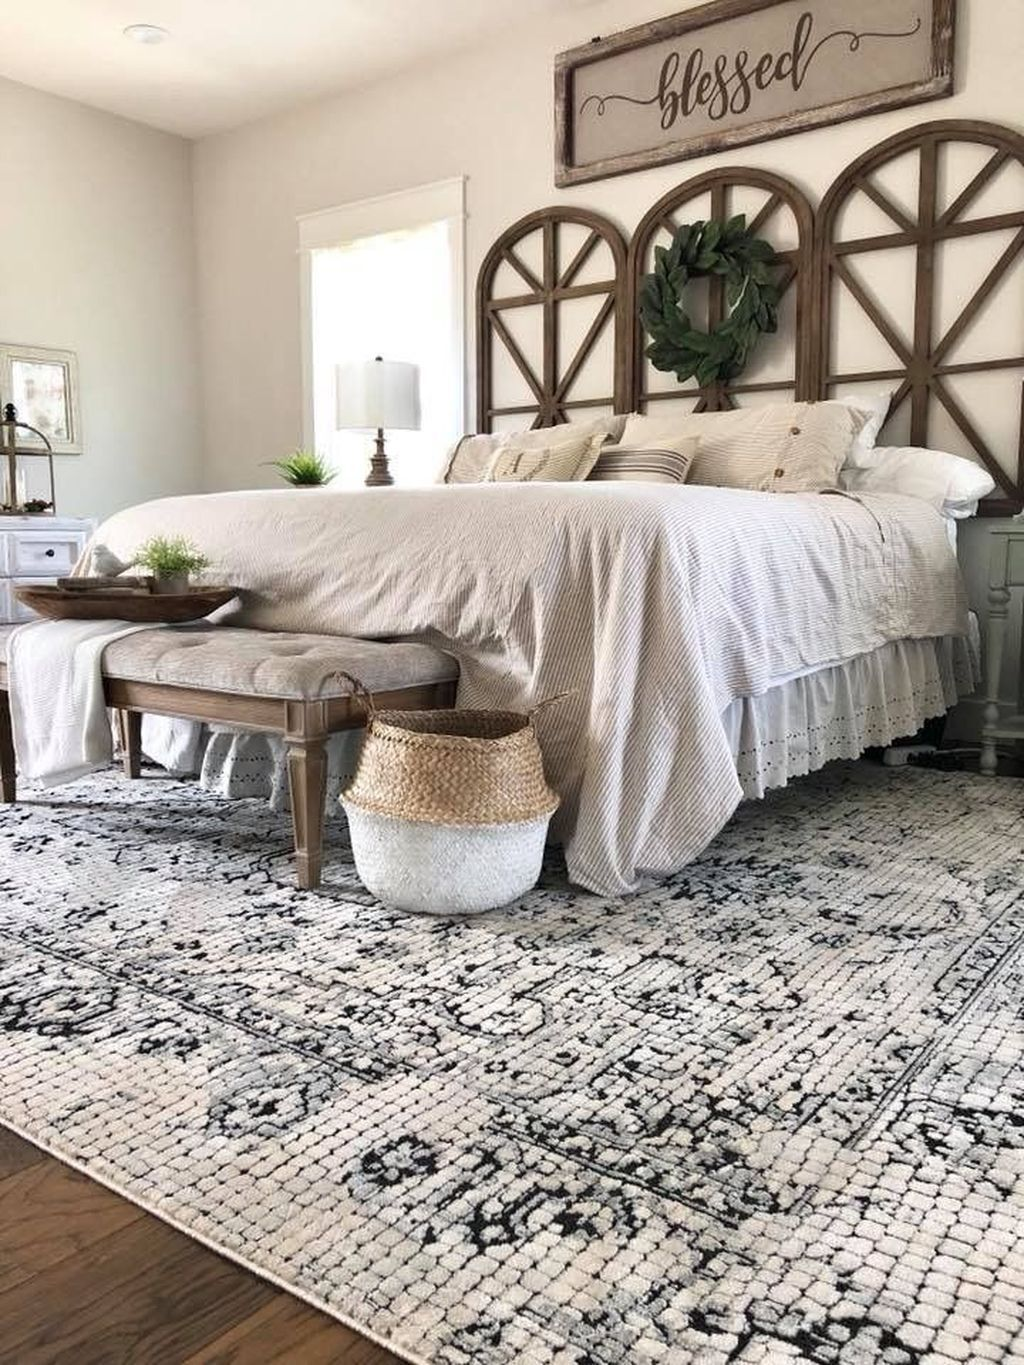 30 Awesome Farmhouse Style Master Bedroom Ideas Home Decor Bedroom Rustic Farmhouse Bedroom Master Bedrooms Decor